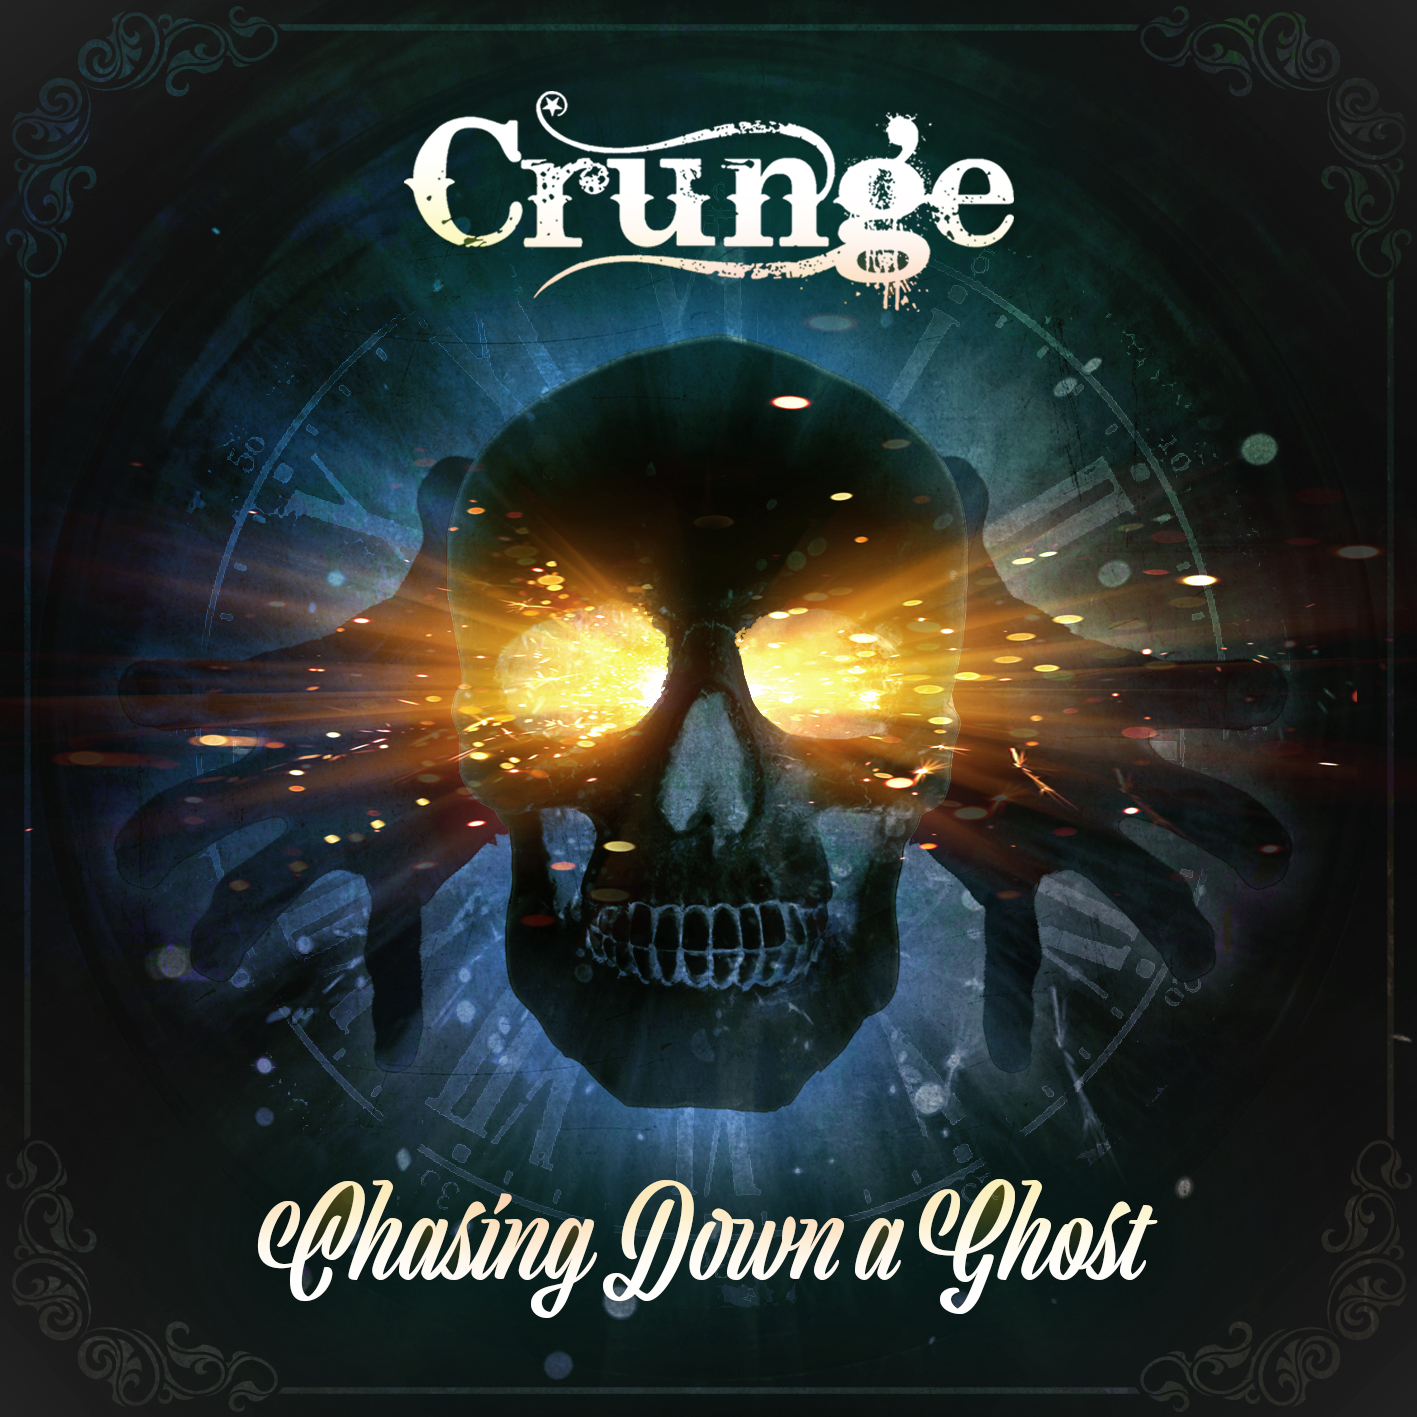 CRUNGE - Chasing Down A Ghost